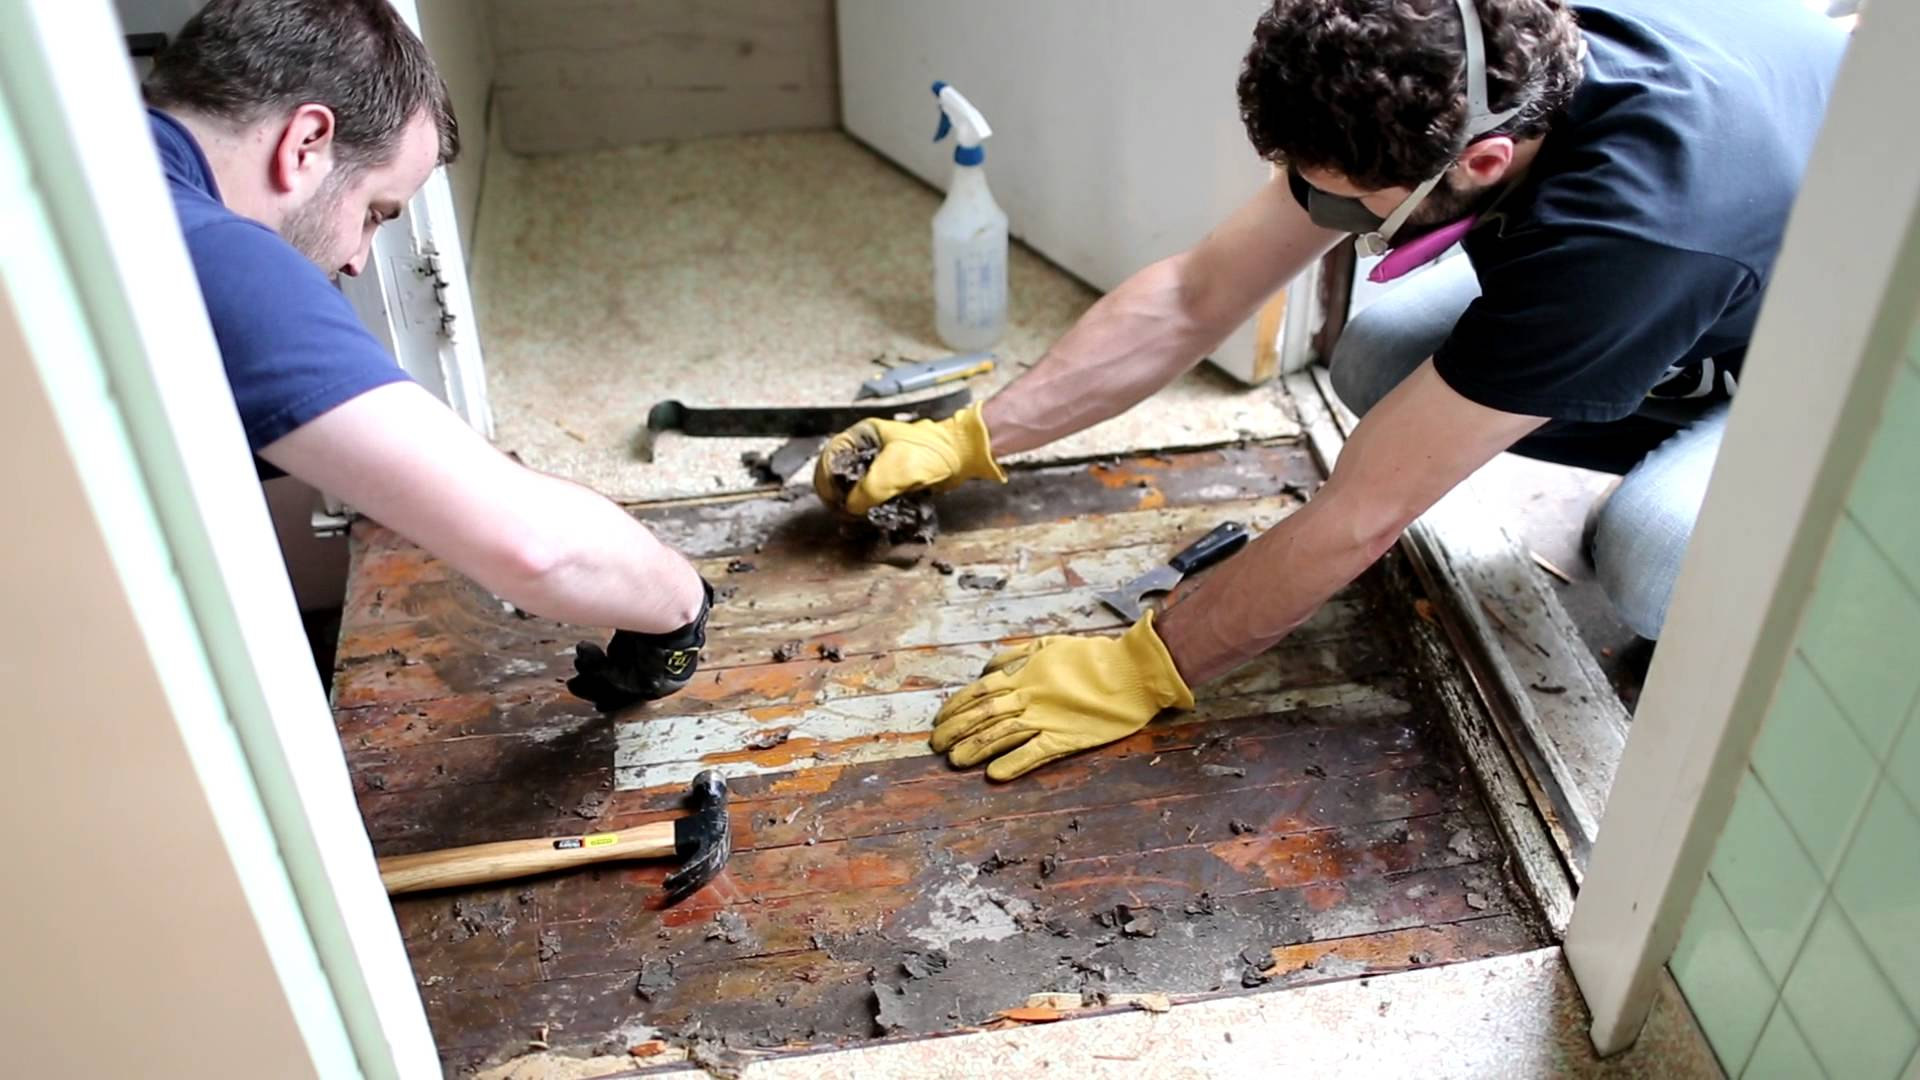 Diy removing vinyl or flooring see it do it diy removing vinyl or flooring solutioingenieria